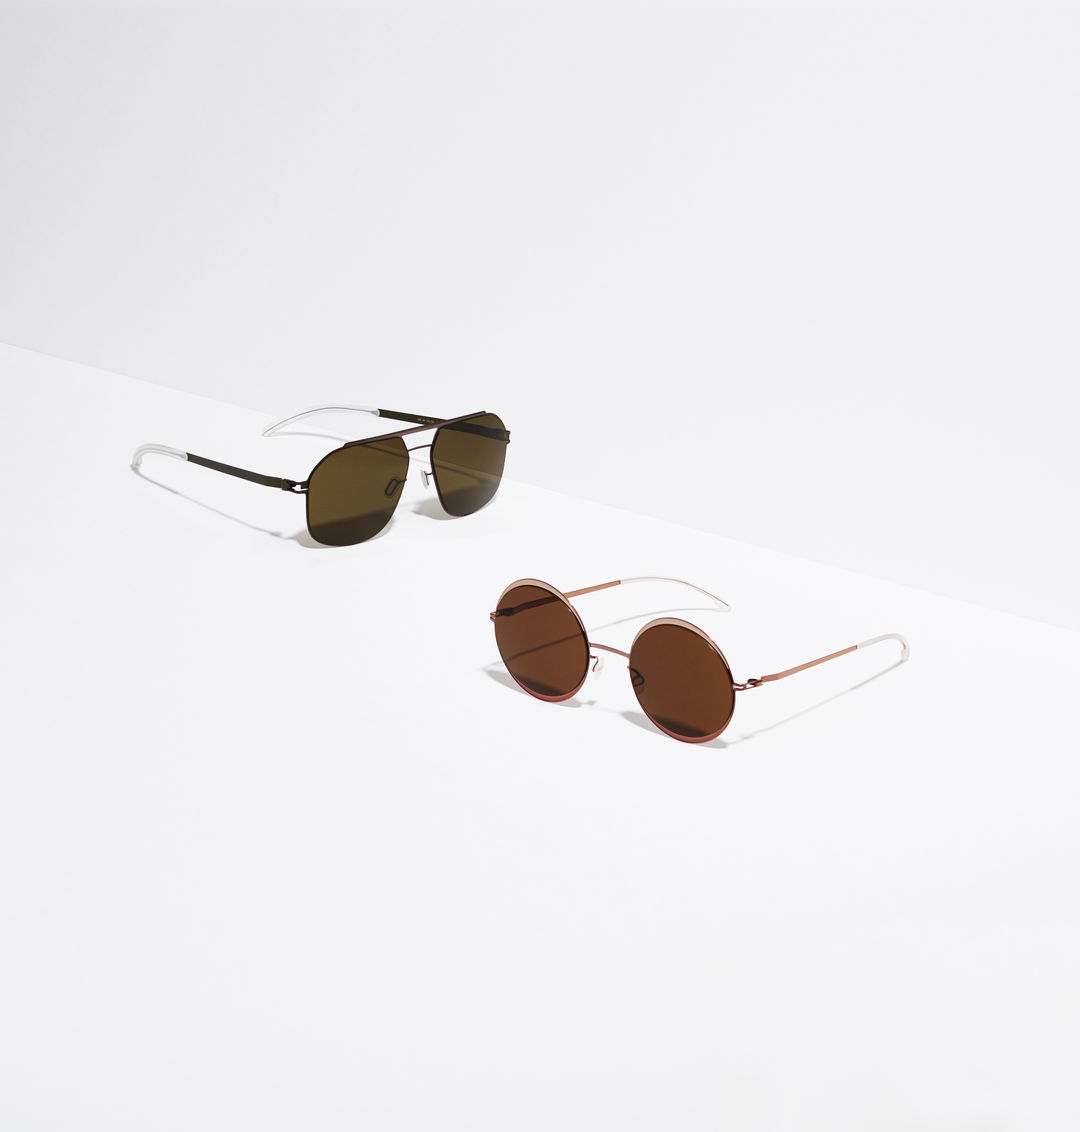 397dade1c80 MYKITA No1 Sun Selleck Mocca Camou Green Raw Brown Solid MYKITA Decades Sun  Iris Purple Bronze